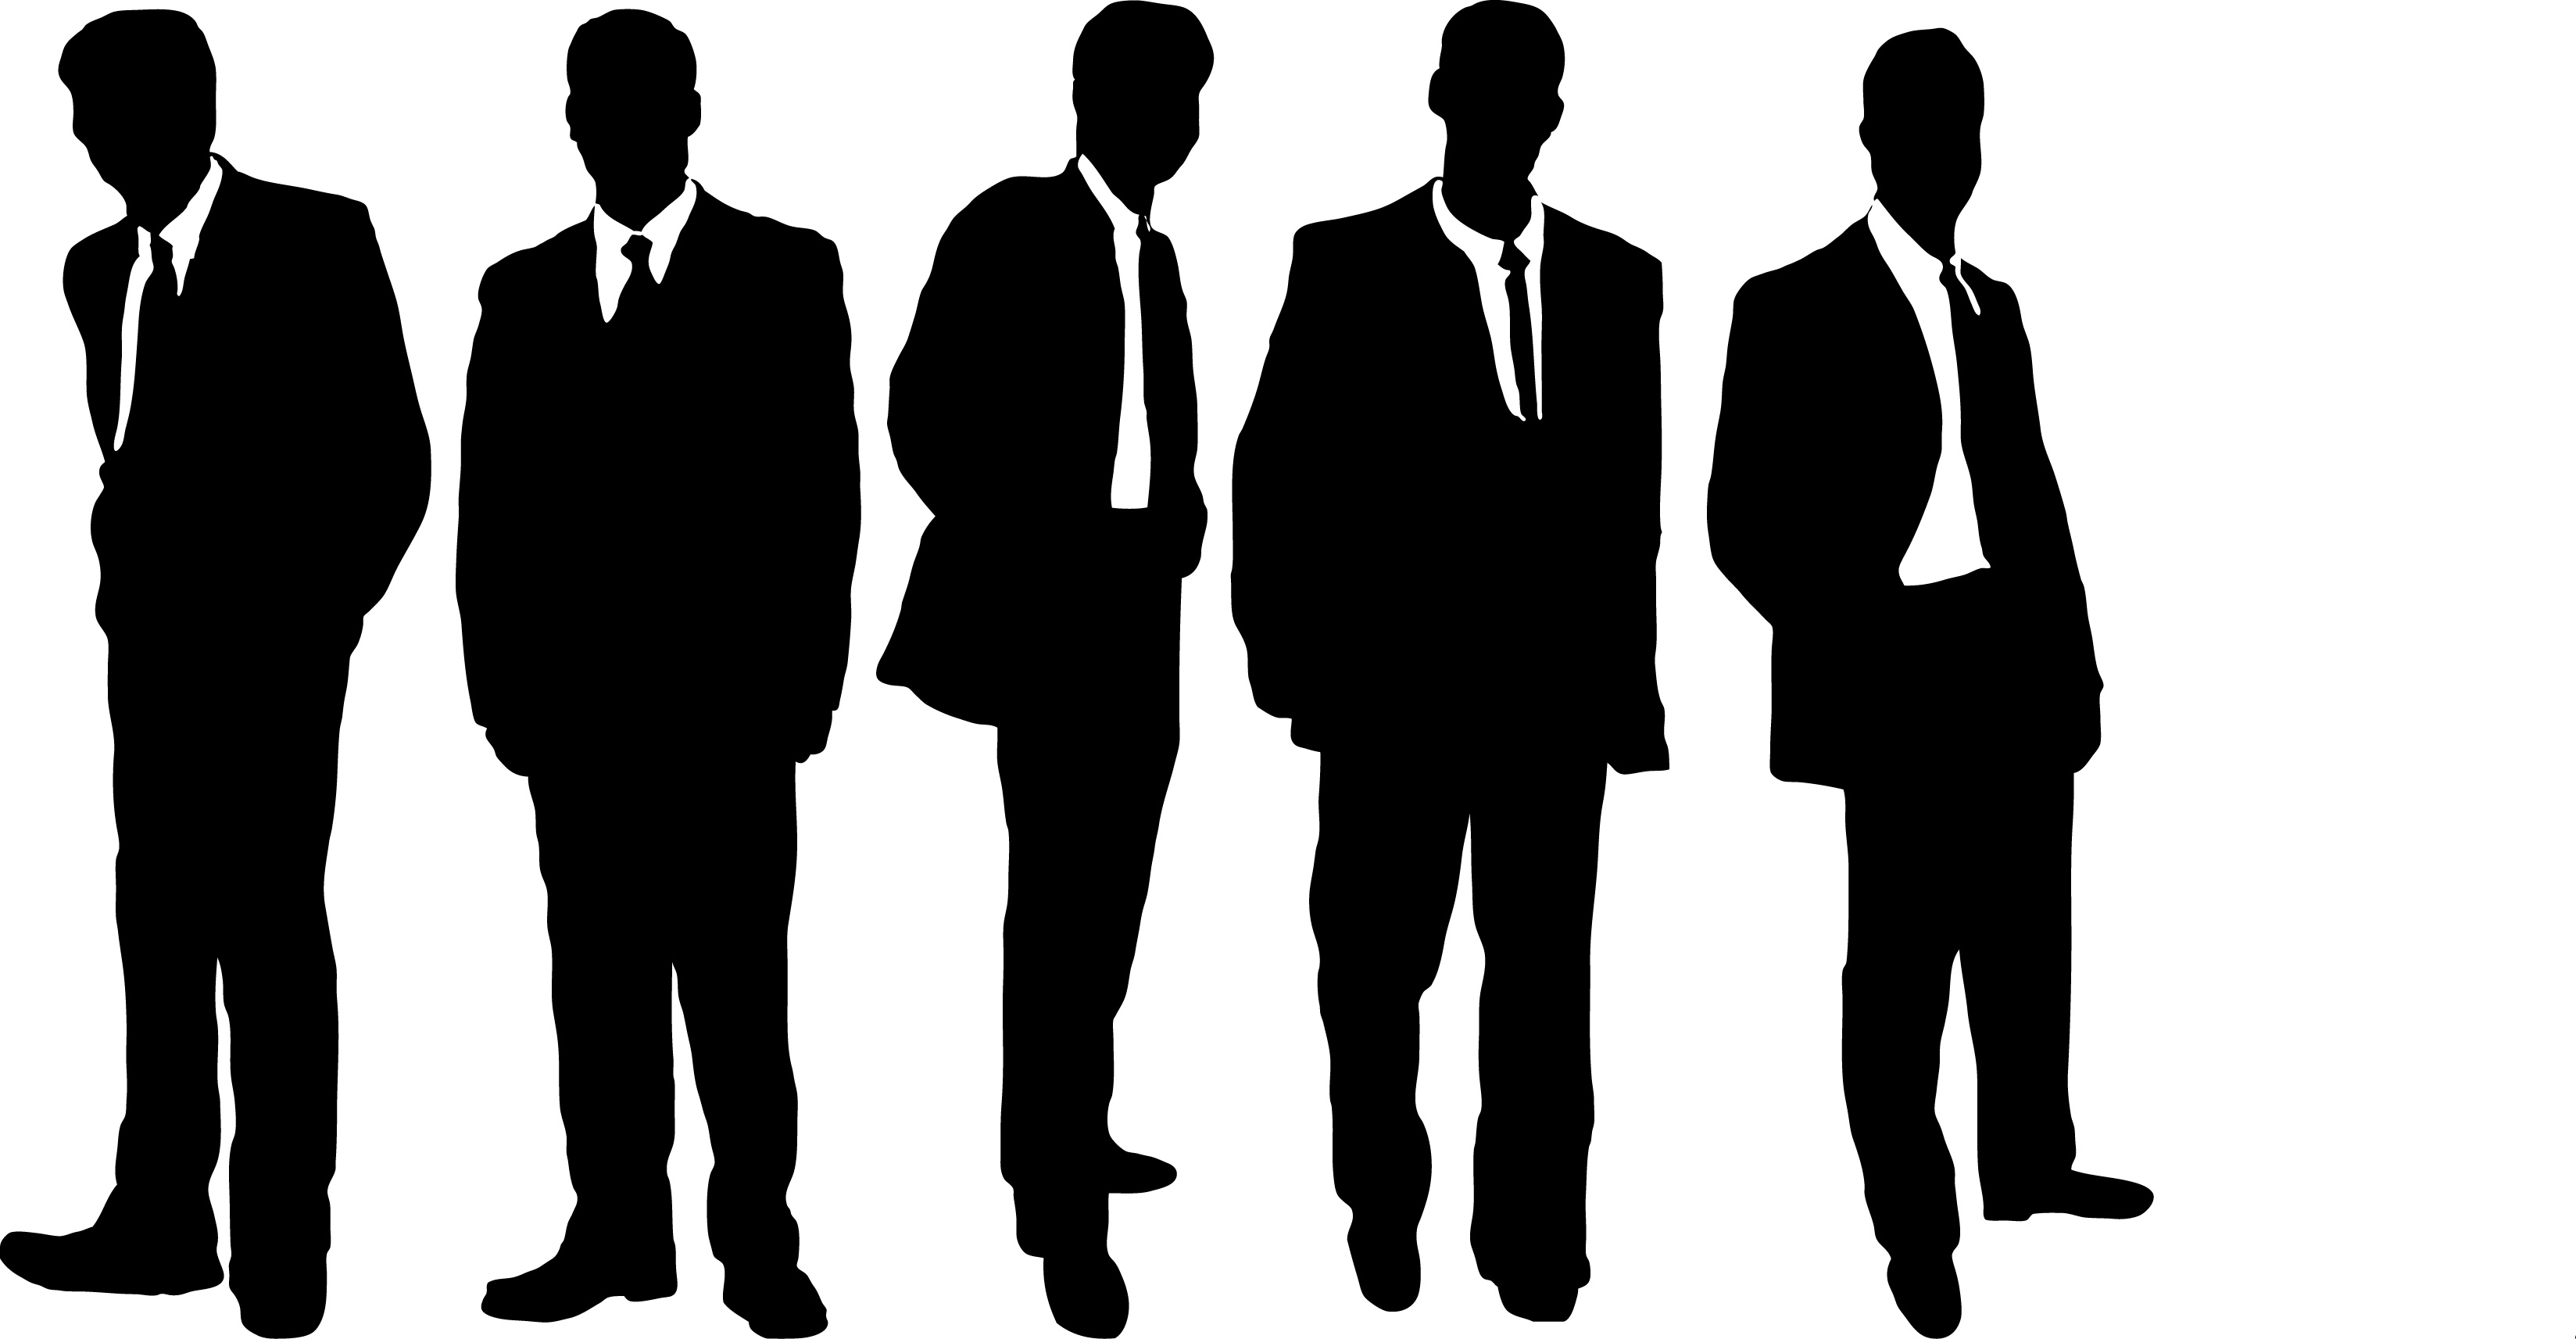 group silhouette clip art at getdrawings com free for personal use rh getdrawings com free clipart images business meeting free business clipart gallery